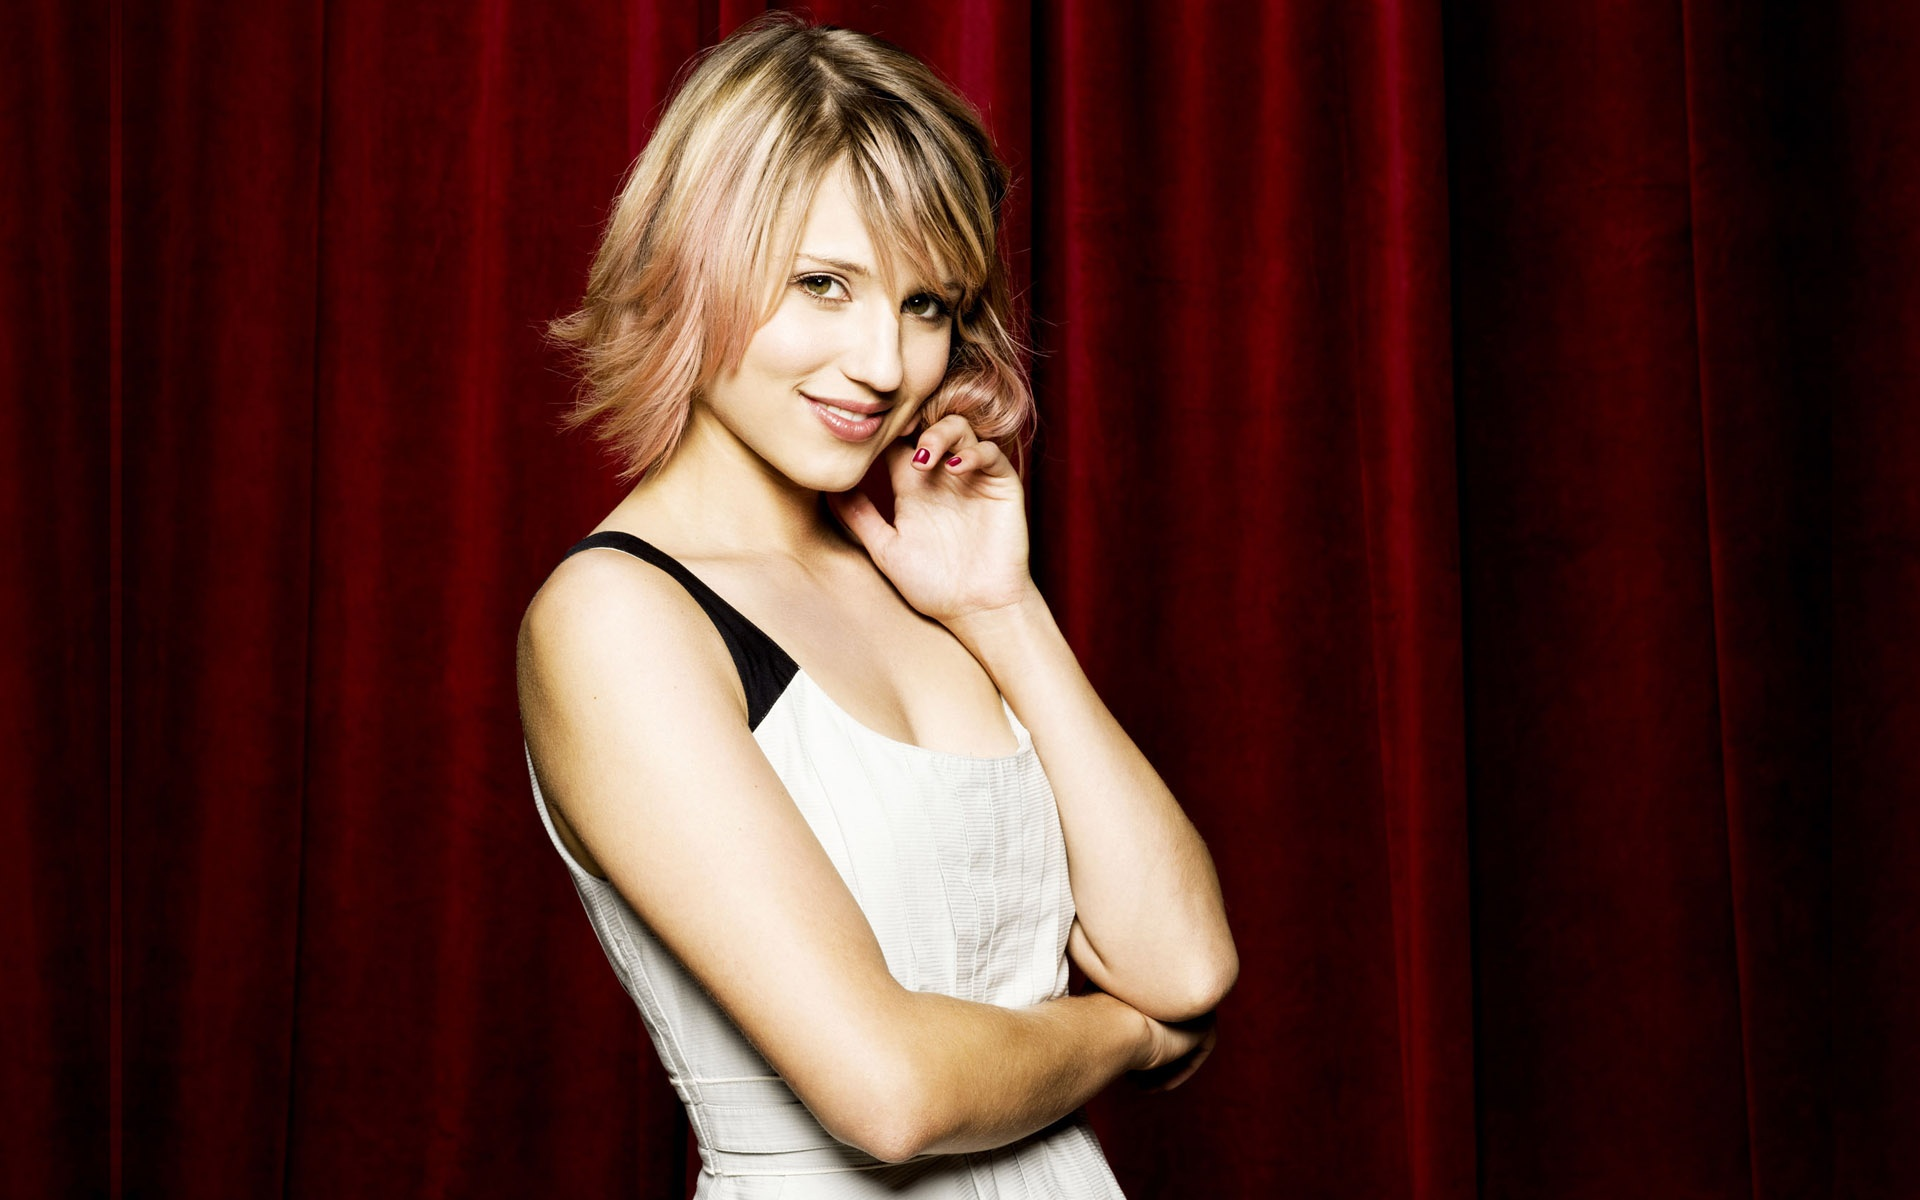 1920x1200 - Dianna Agron Wallpapers 11